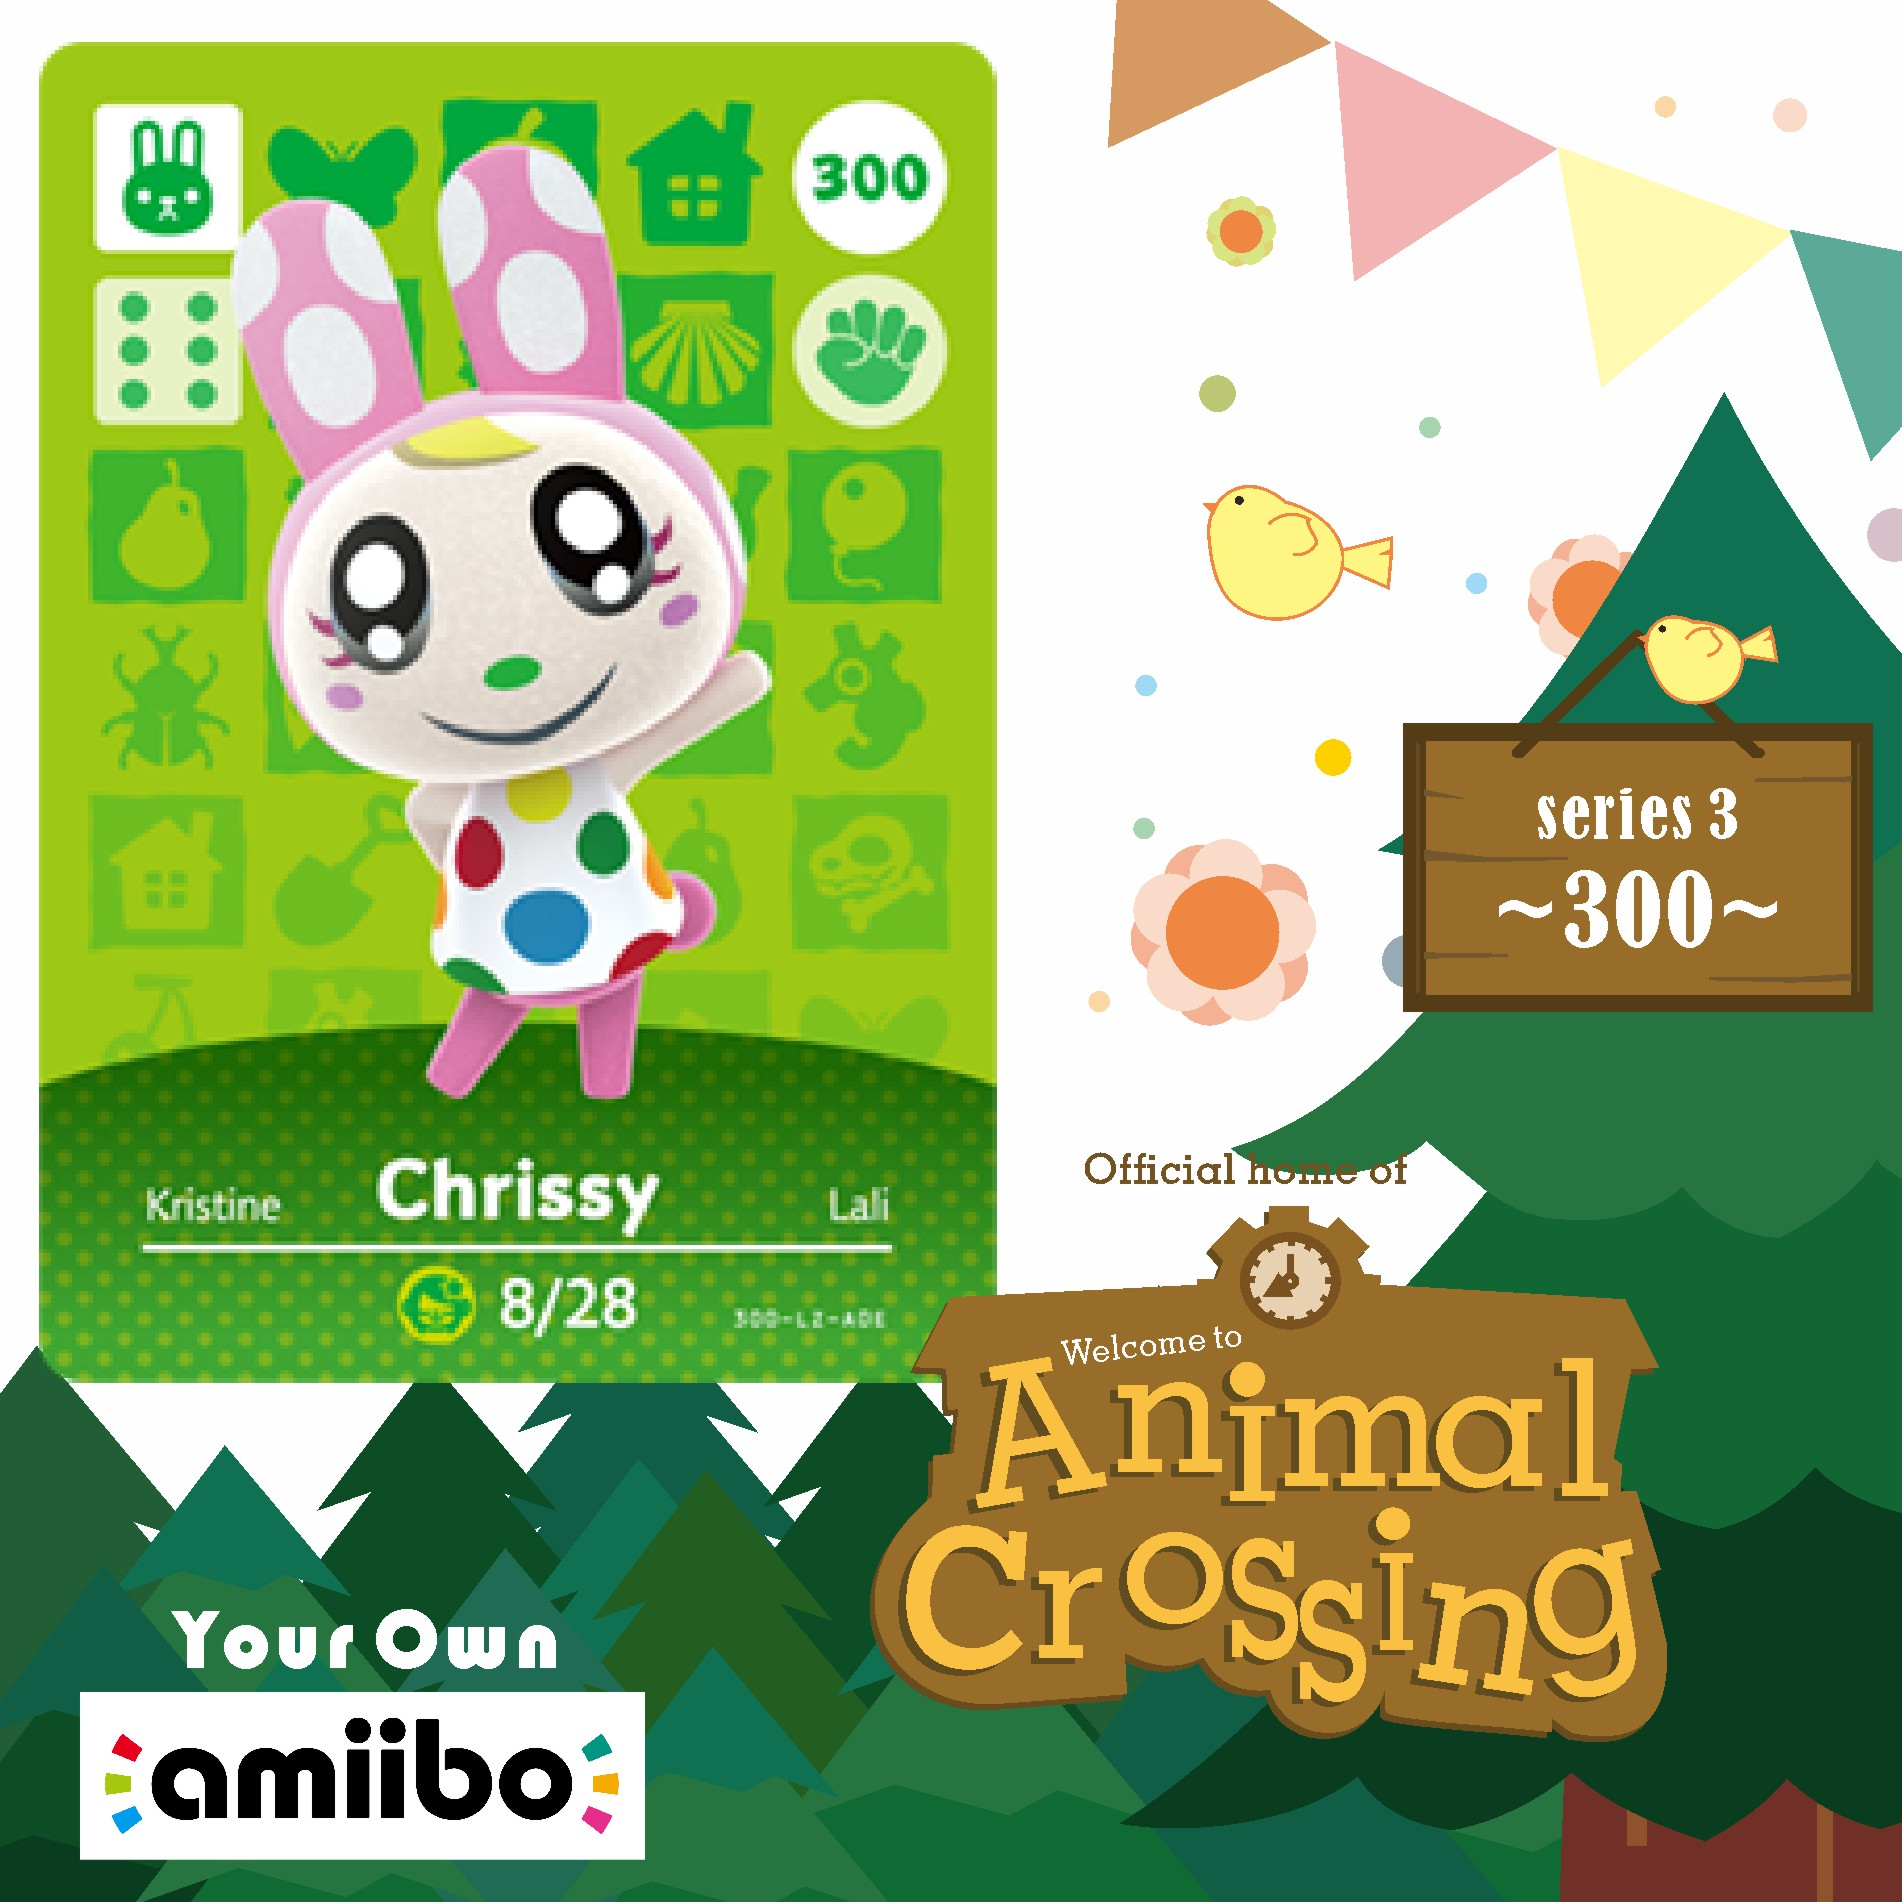 Animal Crossing 300 Villager Amiibo Chrissy Cards Amiibo Chrissy Game Card for NS game New Horizosn Chrissy 300 Season Series 4 1